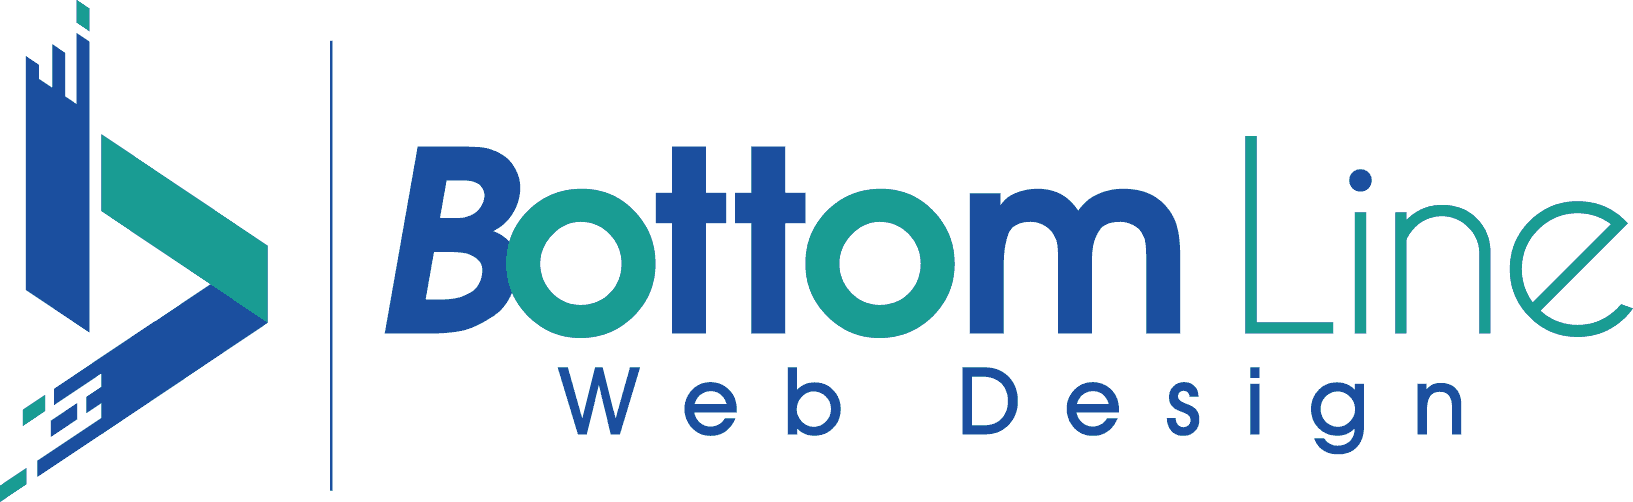 Newly Revamped Services Launched by Bottom Line Web Design